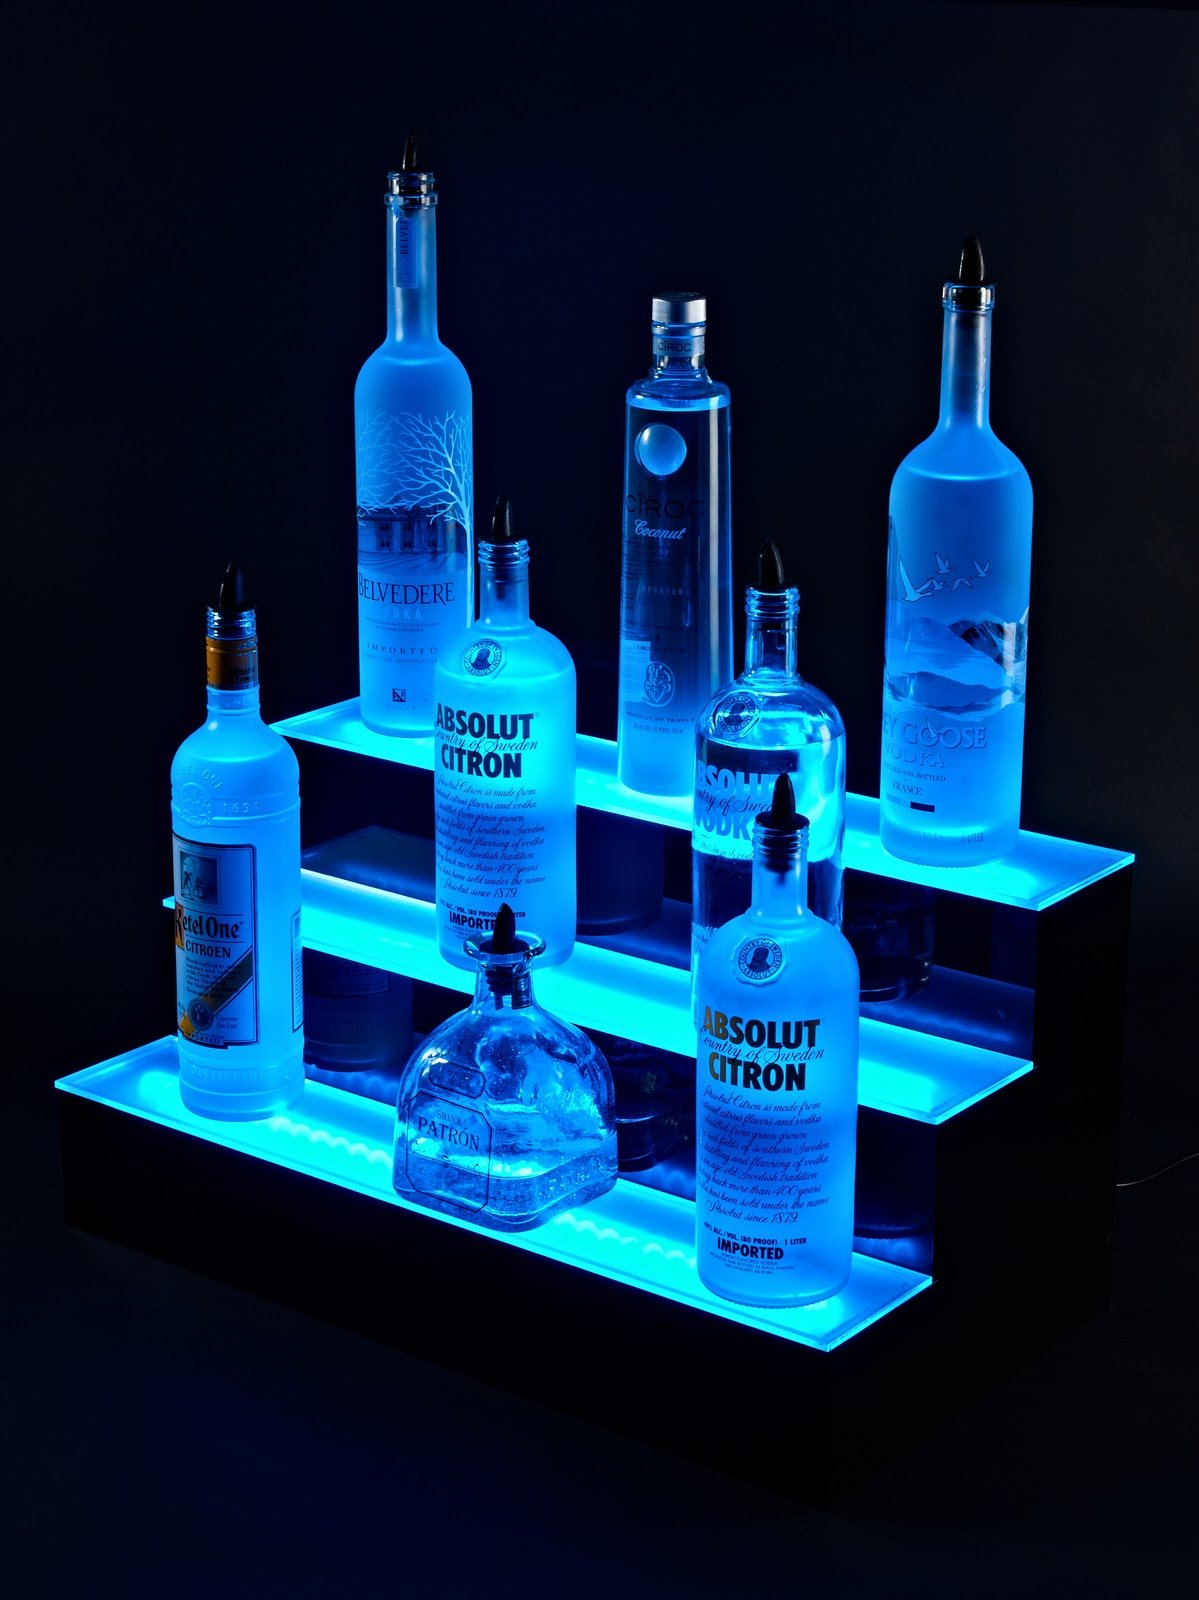 24'' inch 3 Tier Lighted Liquor Shelves Bottle Display LED |Home bar Lights by Armana Productions (Image #2)